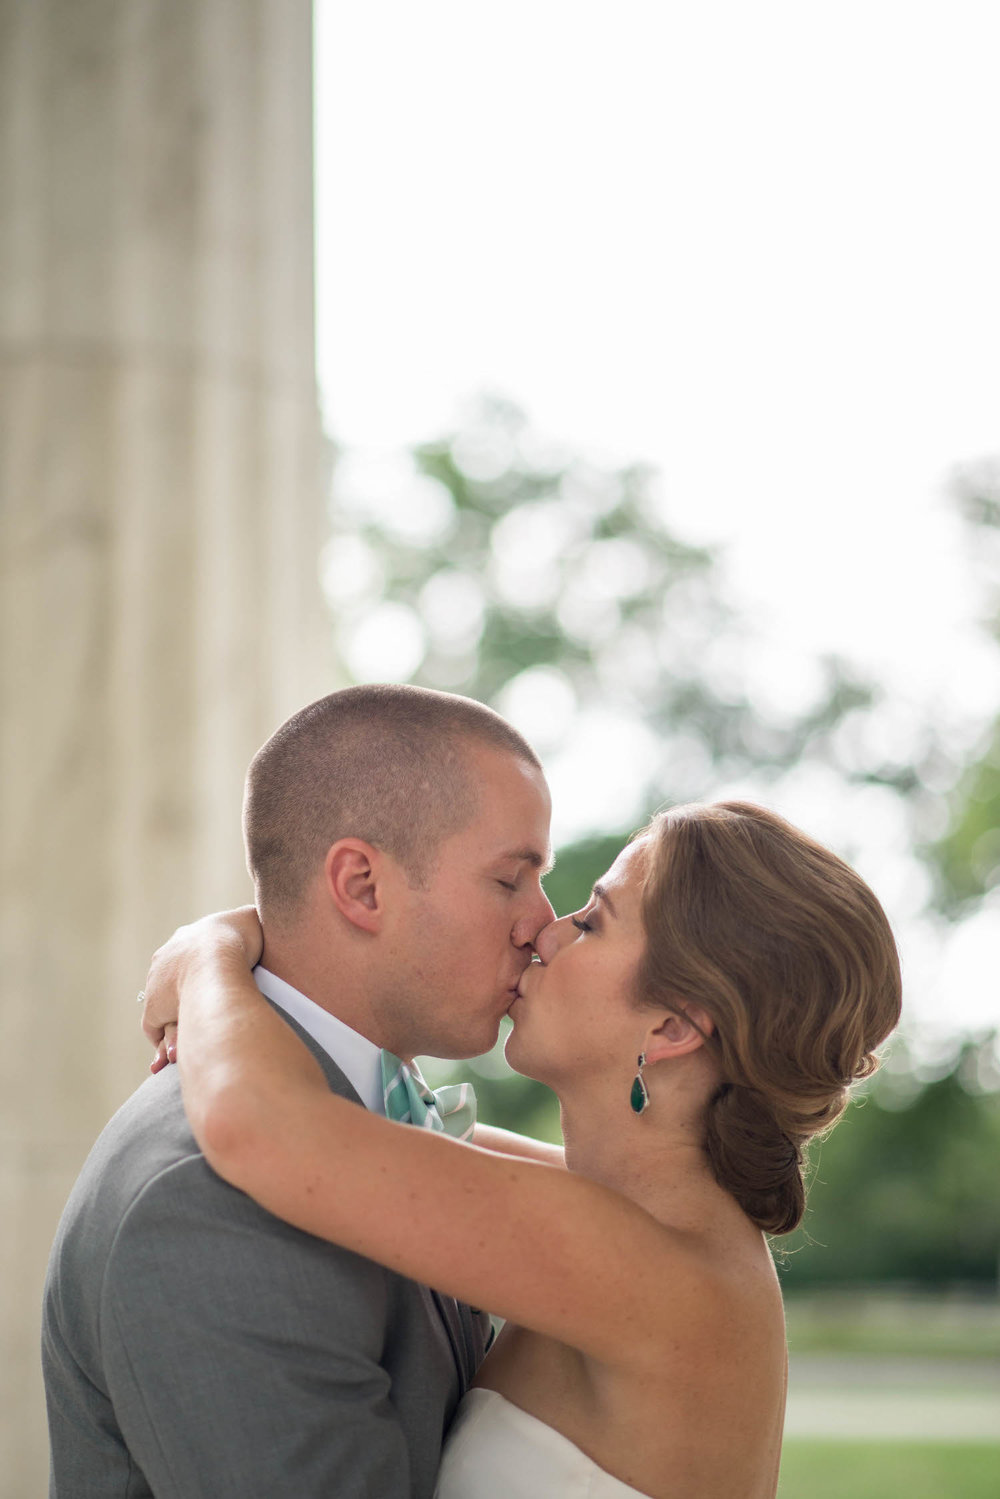 Washington DC Wedding - Sincerely Pete Events - Erin Tetterton Photography - Wedding Photos at the Monuments